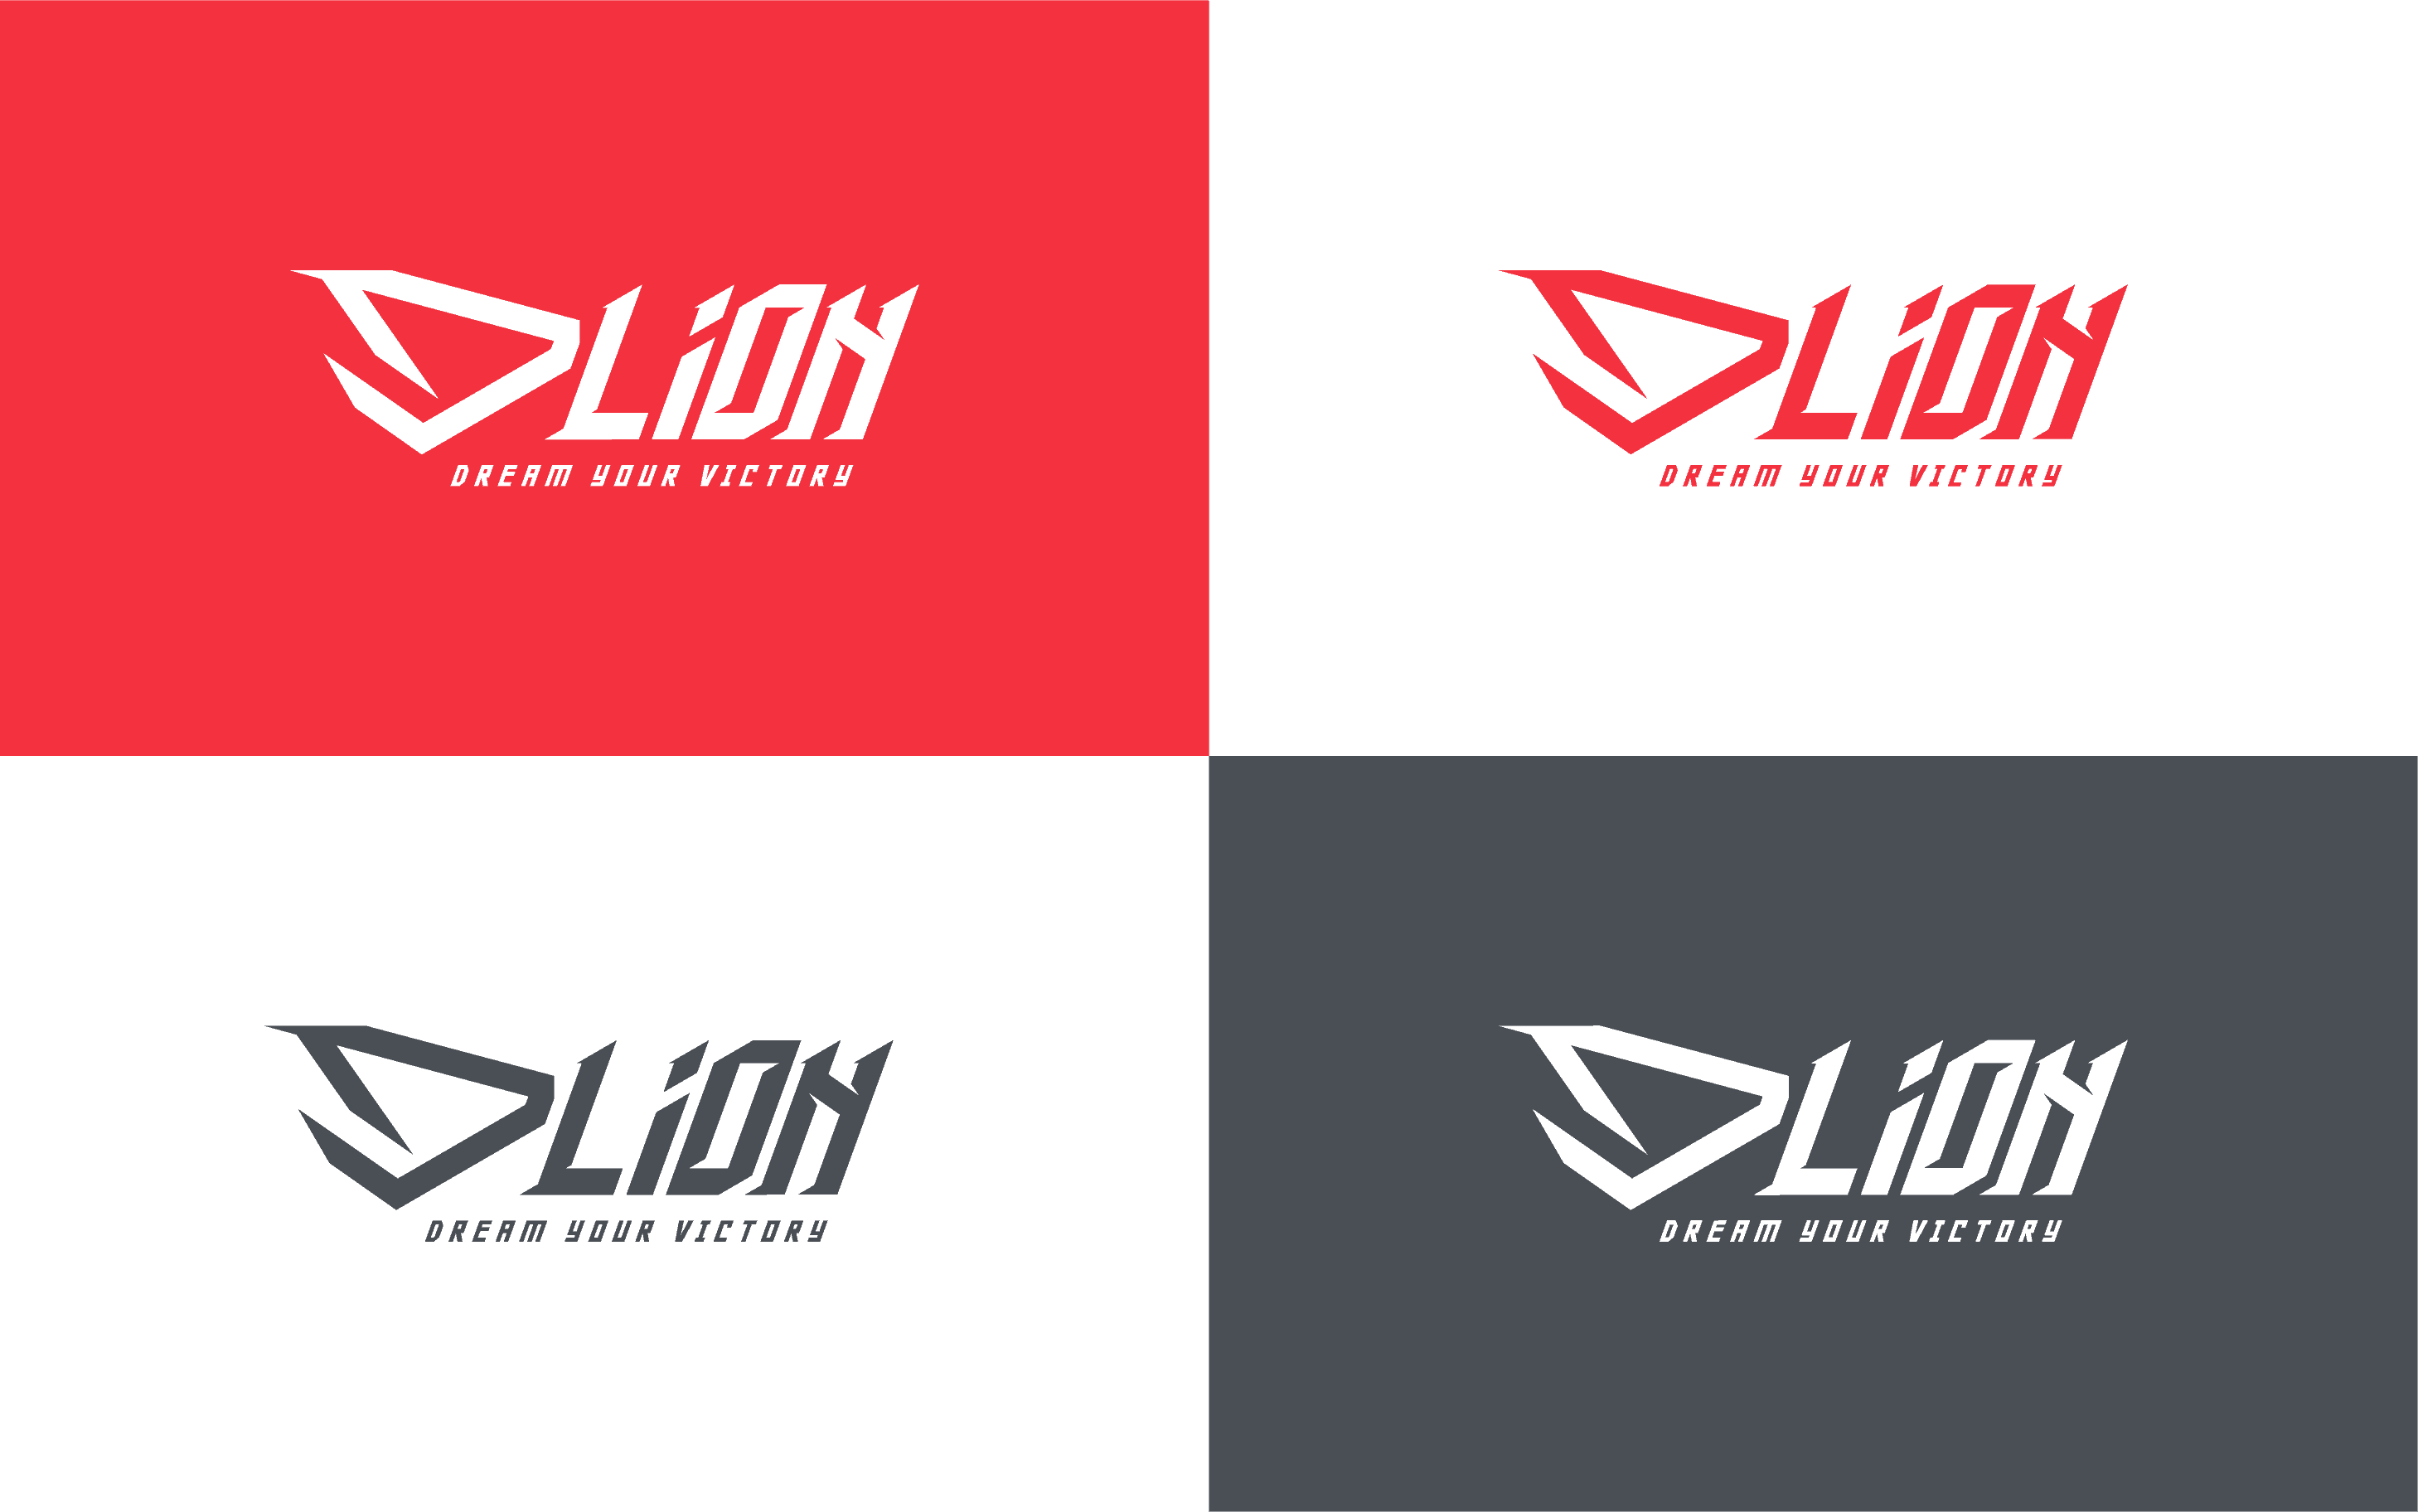 DLION color background Logo